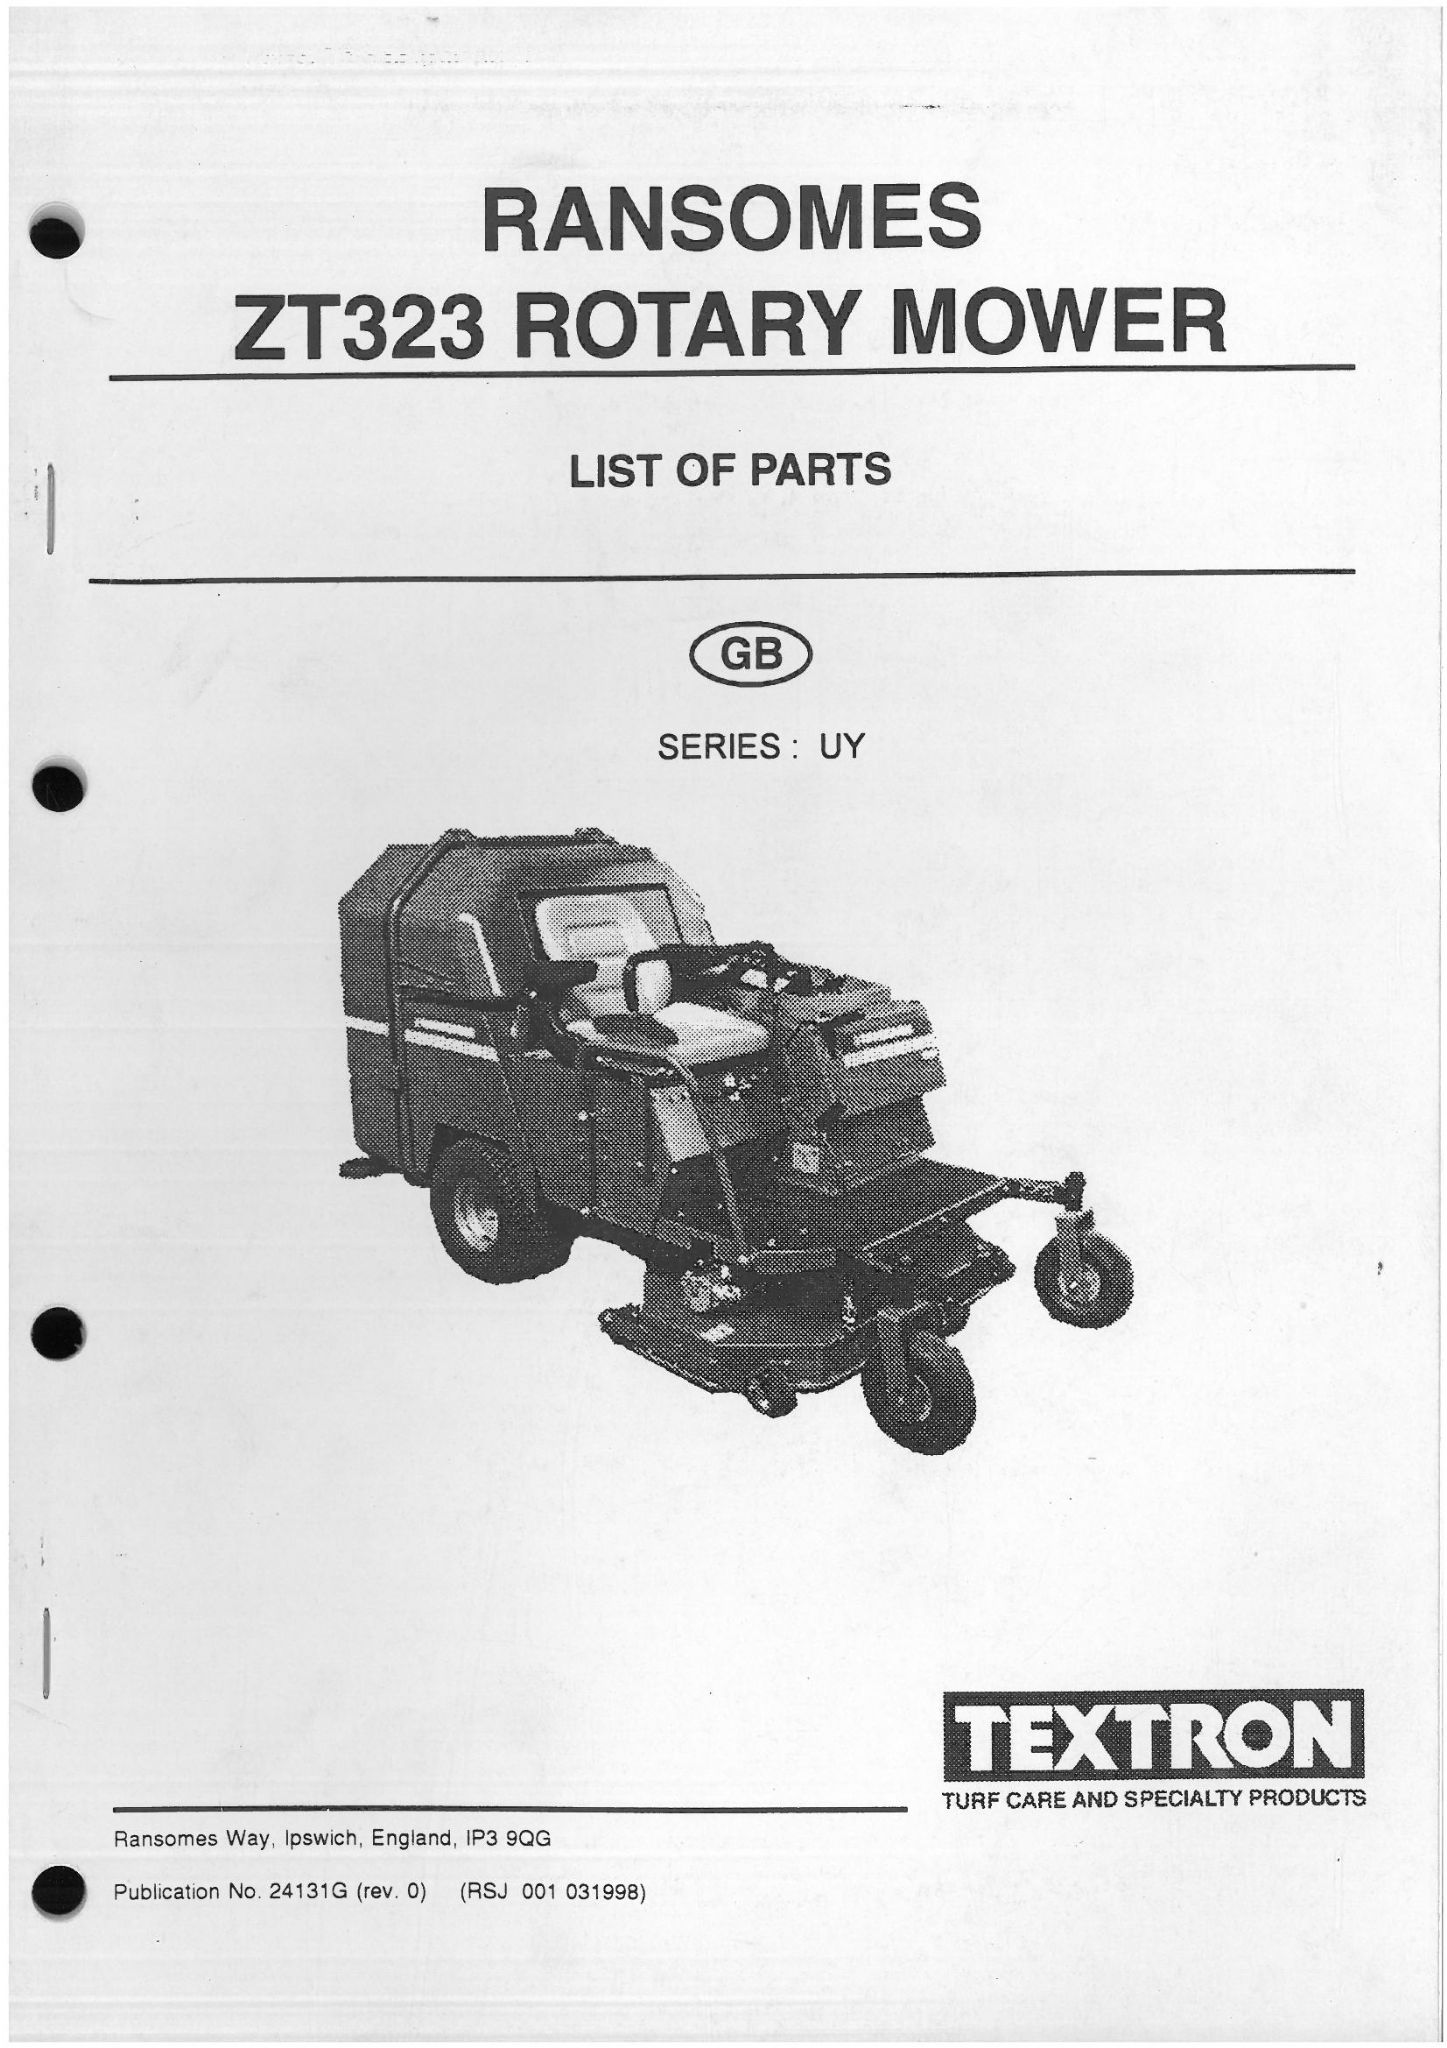 Ransome bobcat mower Parts Manual